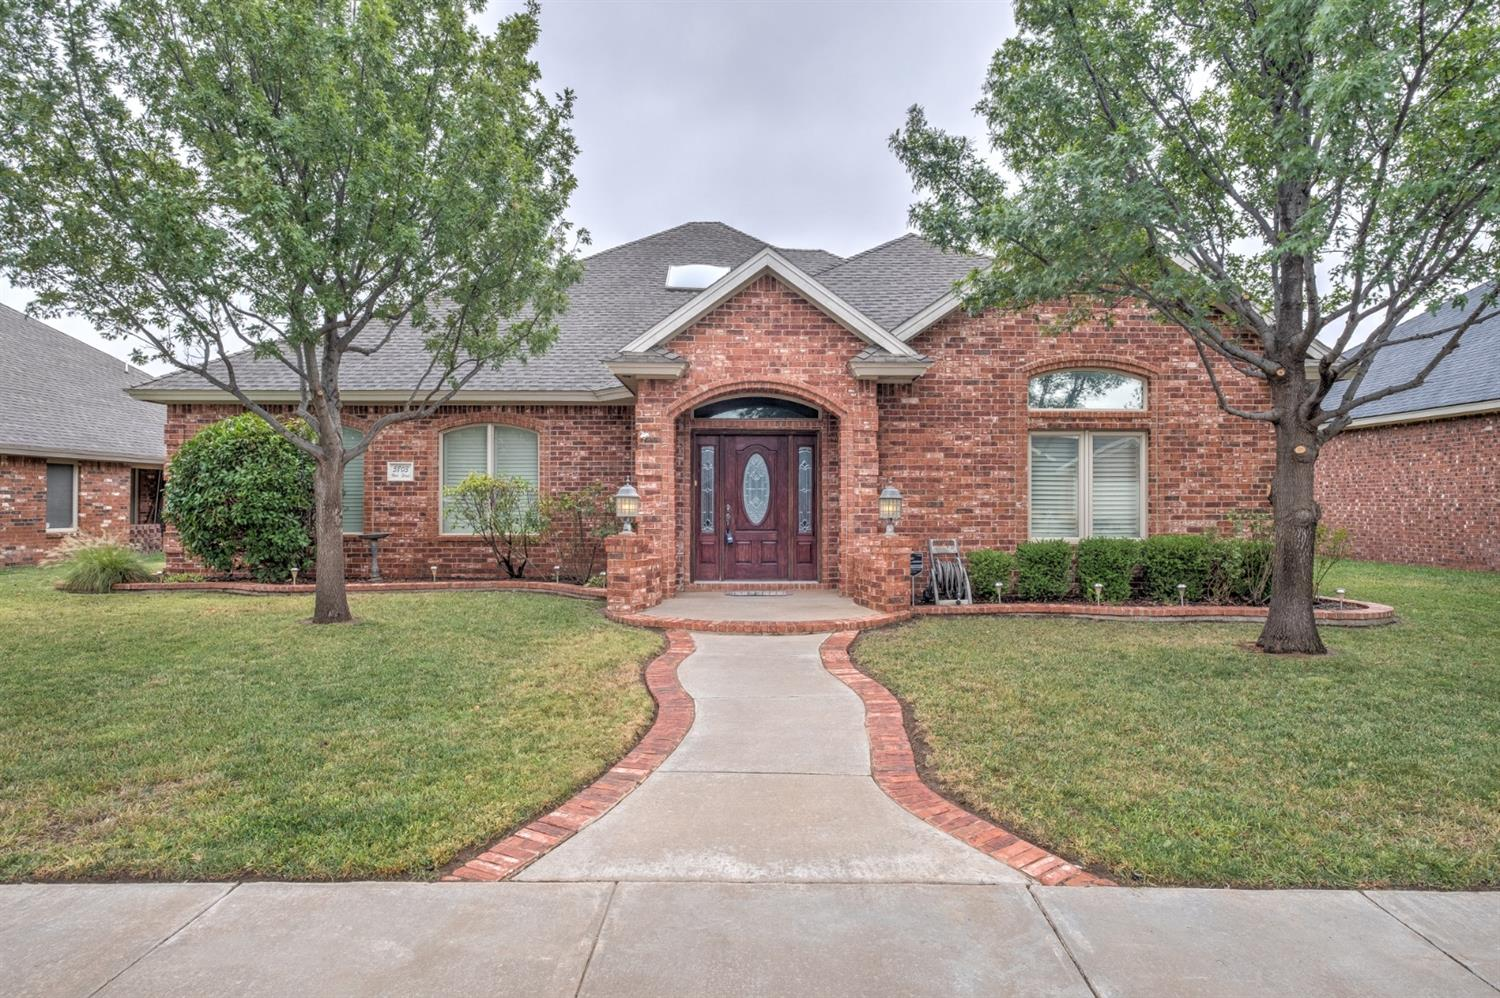 This beautiful 3 bedroom 2.5 bath home in Frenship school district boasts a large open concept living/dining/kitchen area along with a large study.  And if you are looking for a home with tons of storage space, look no more. Extra built-ins throughout, 2 pantries, walk-in closets with added shelves, built-ins and MORE! Sprinkler system, rear parking, & mature landscaping add to this gorgeous home!  Call today to see before it's gone!